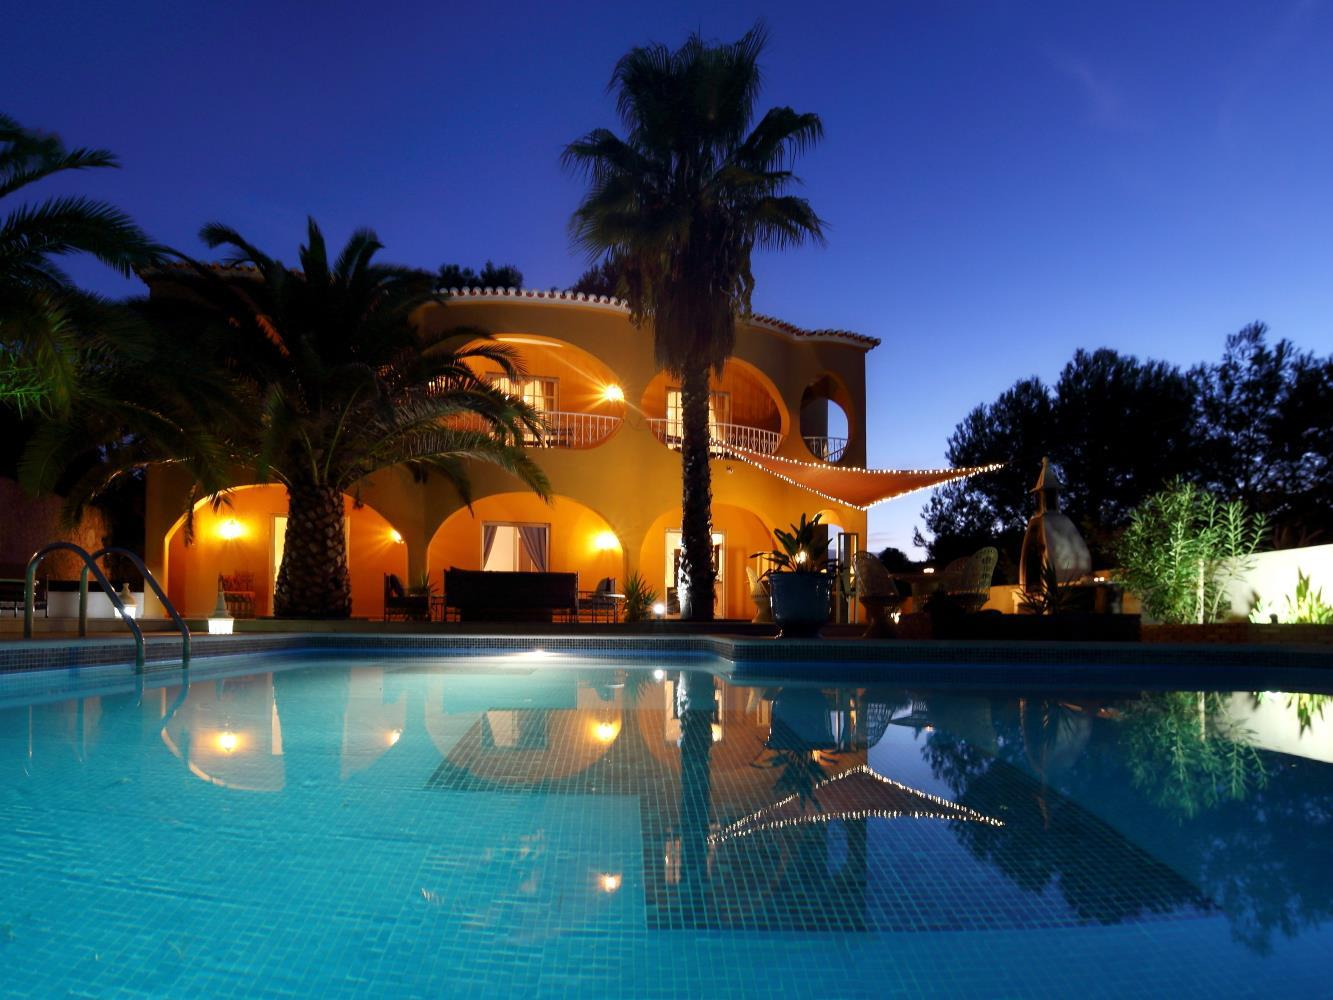 Single Family Home for Sale at Detached house, 5 bedrooms, for Sale Silves, Algarve Portugal